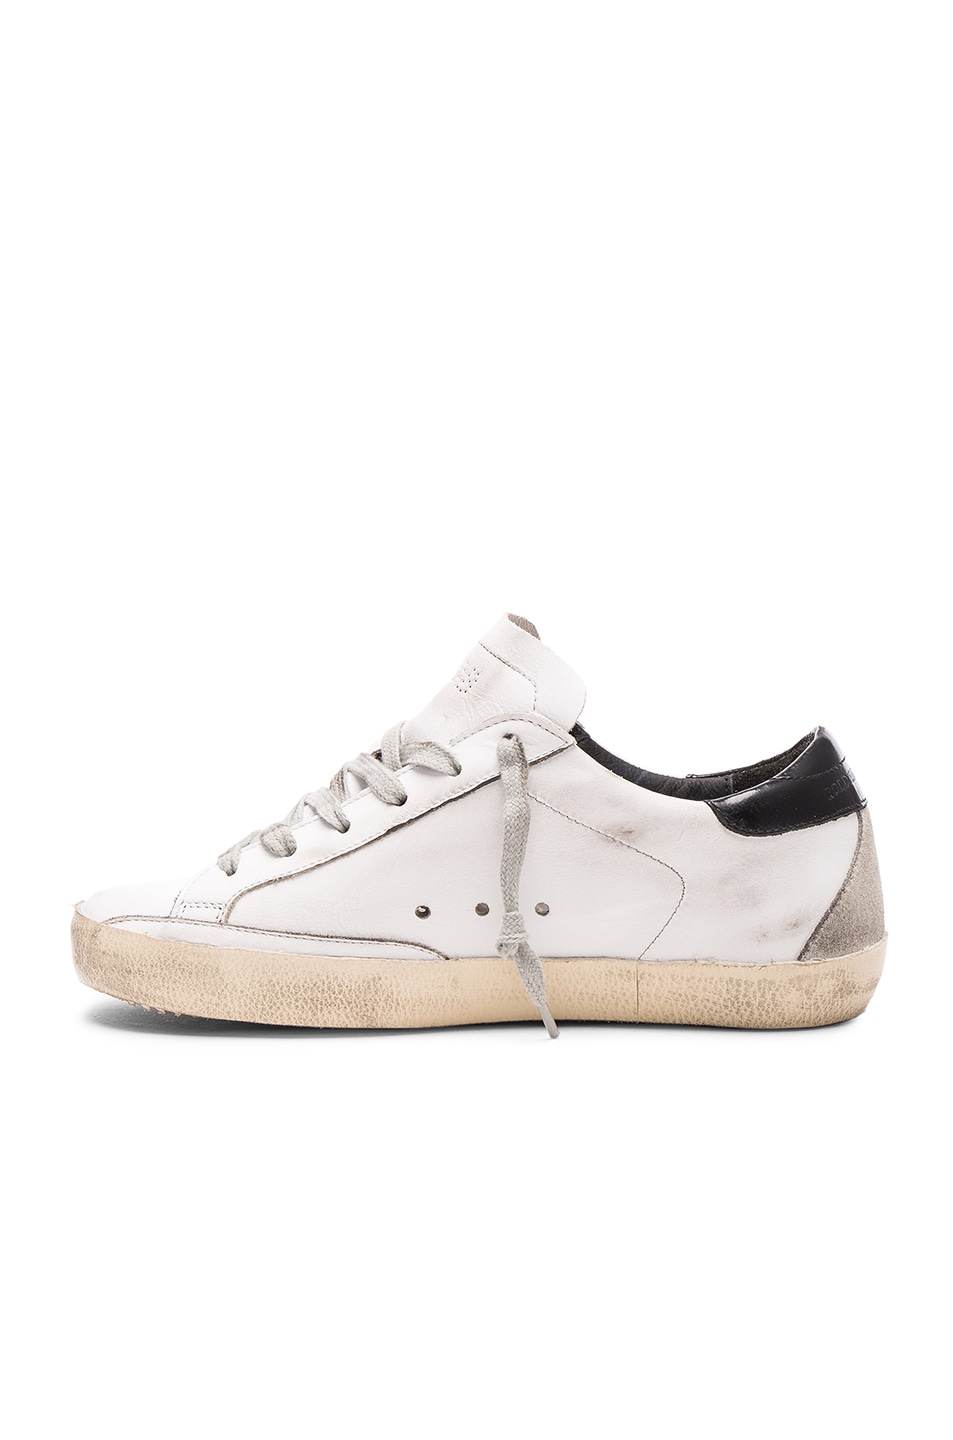 Image 5 of Golden Goose Leather Superstar Low Sneakers in White, Black & Cream Metal